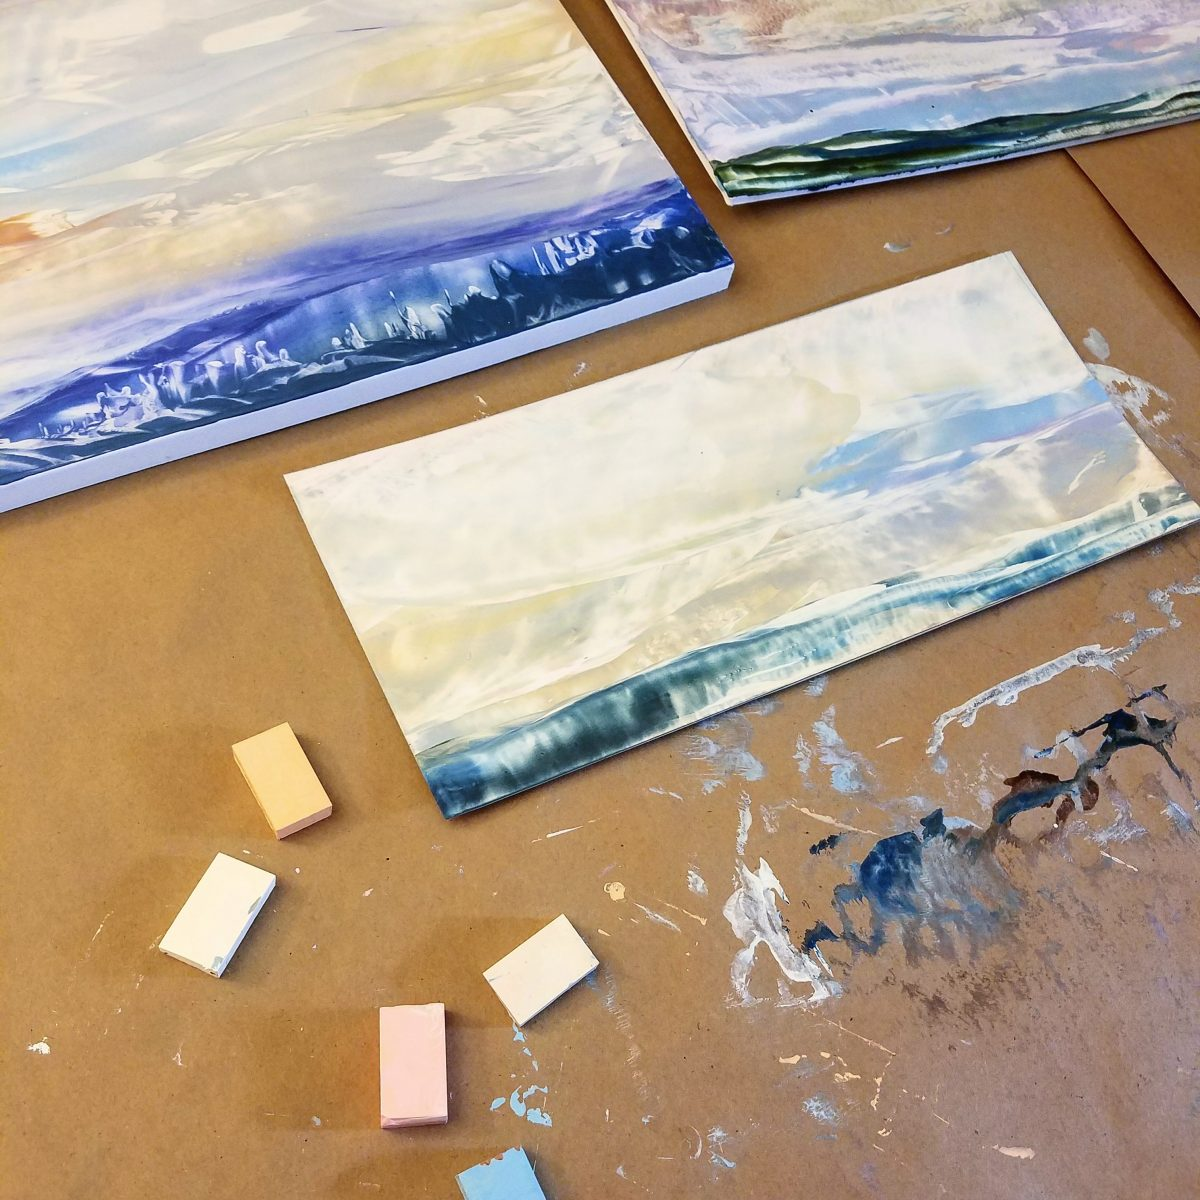 Encaustic Artist Residency: Day 1, Gathering Inspiration